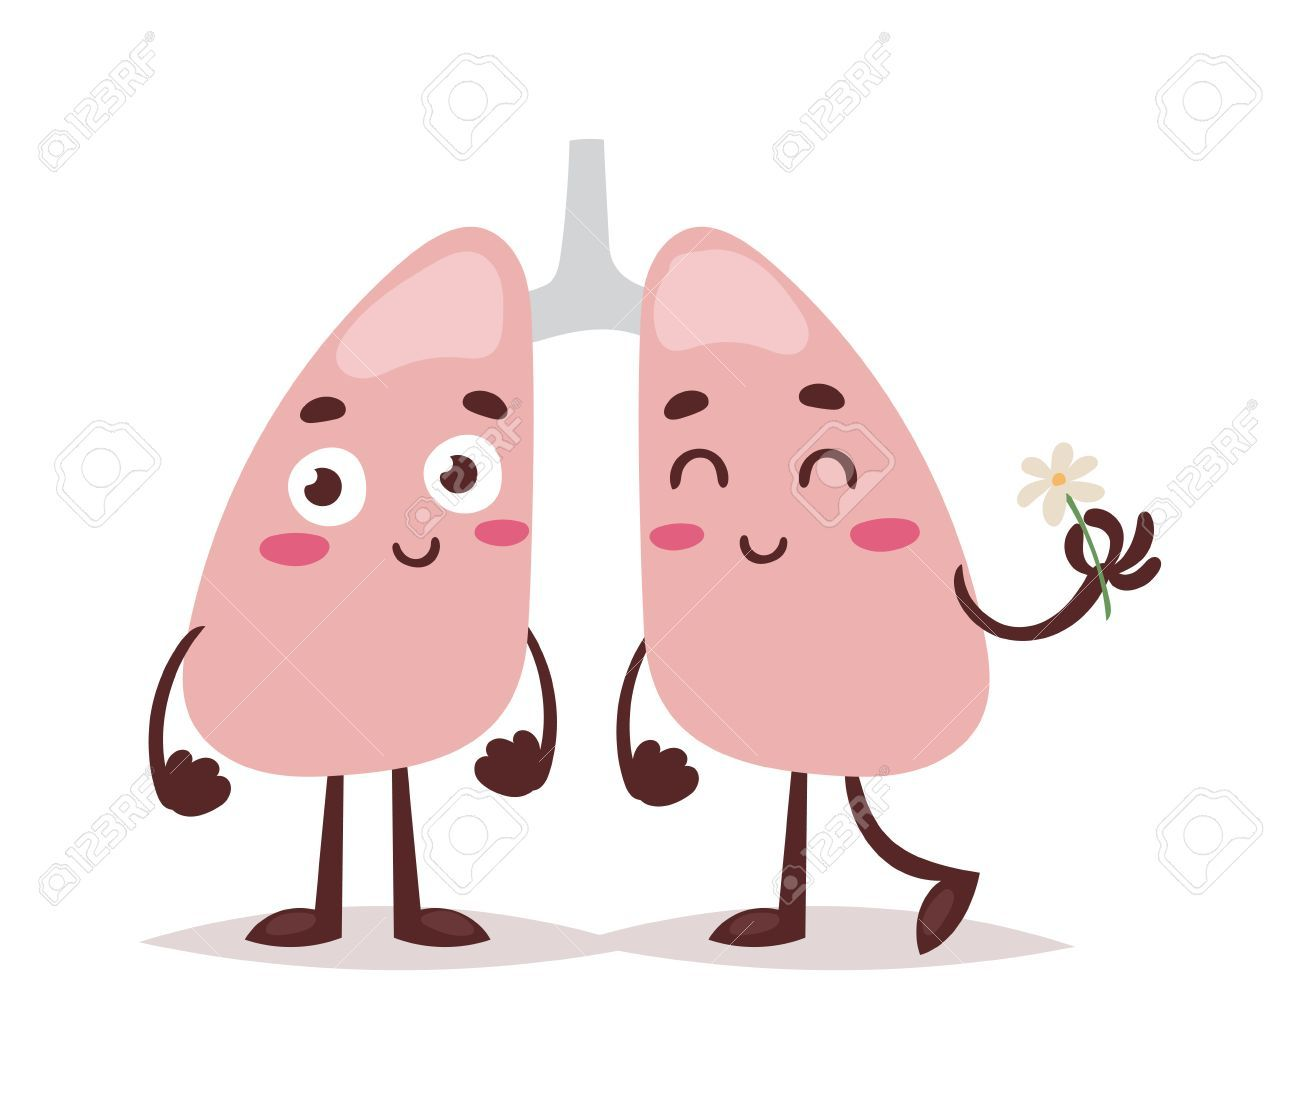 Healthy lungs clipart transparent Clean healthy lungs vector illustration. » Clipart Portal transparent